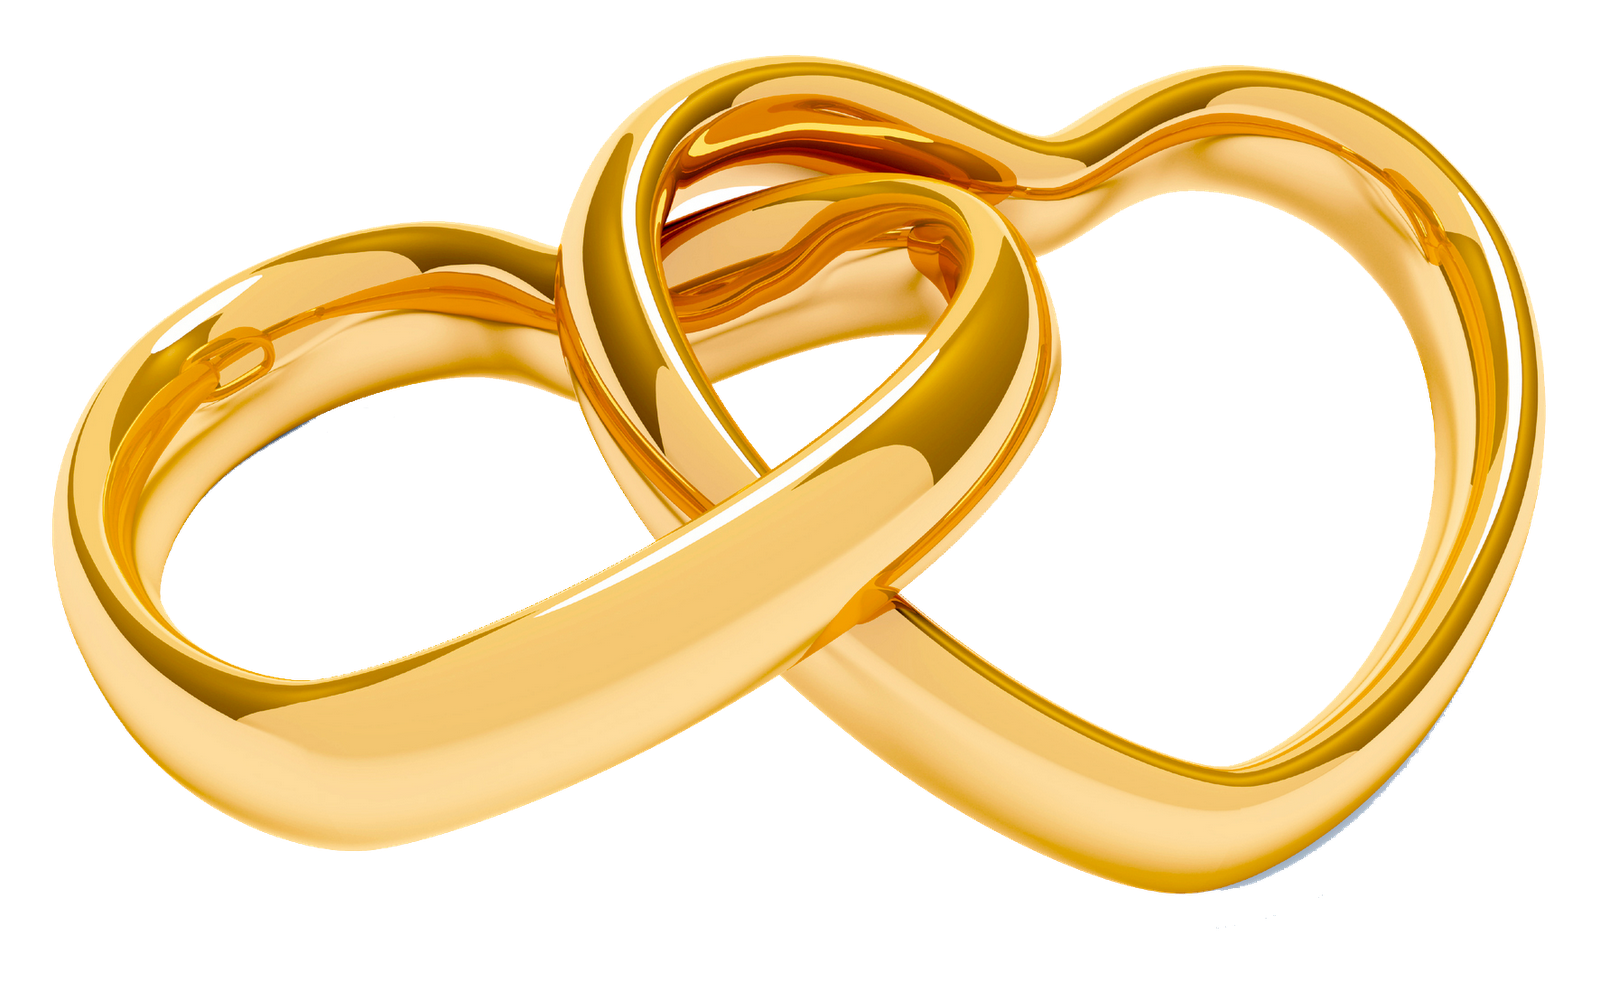 Wedding ring Marriage Clip art.